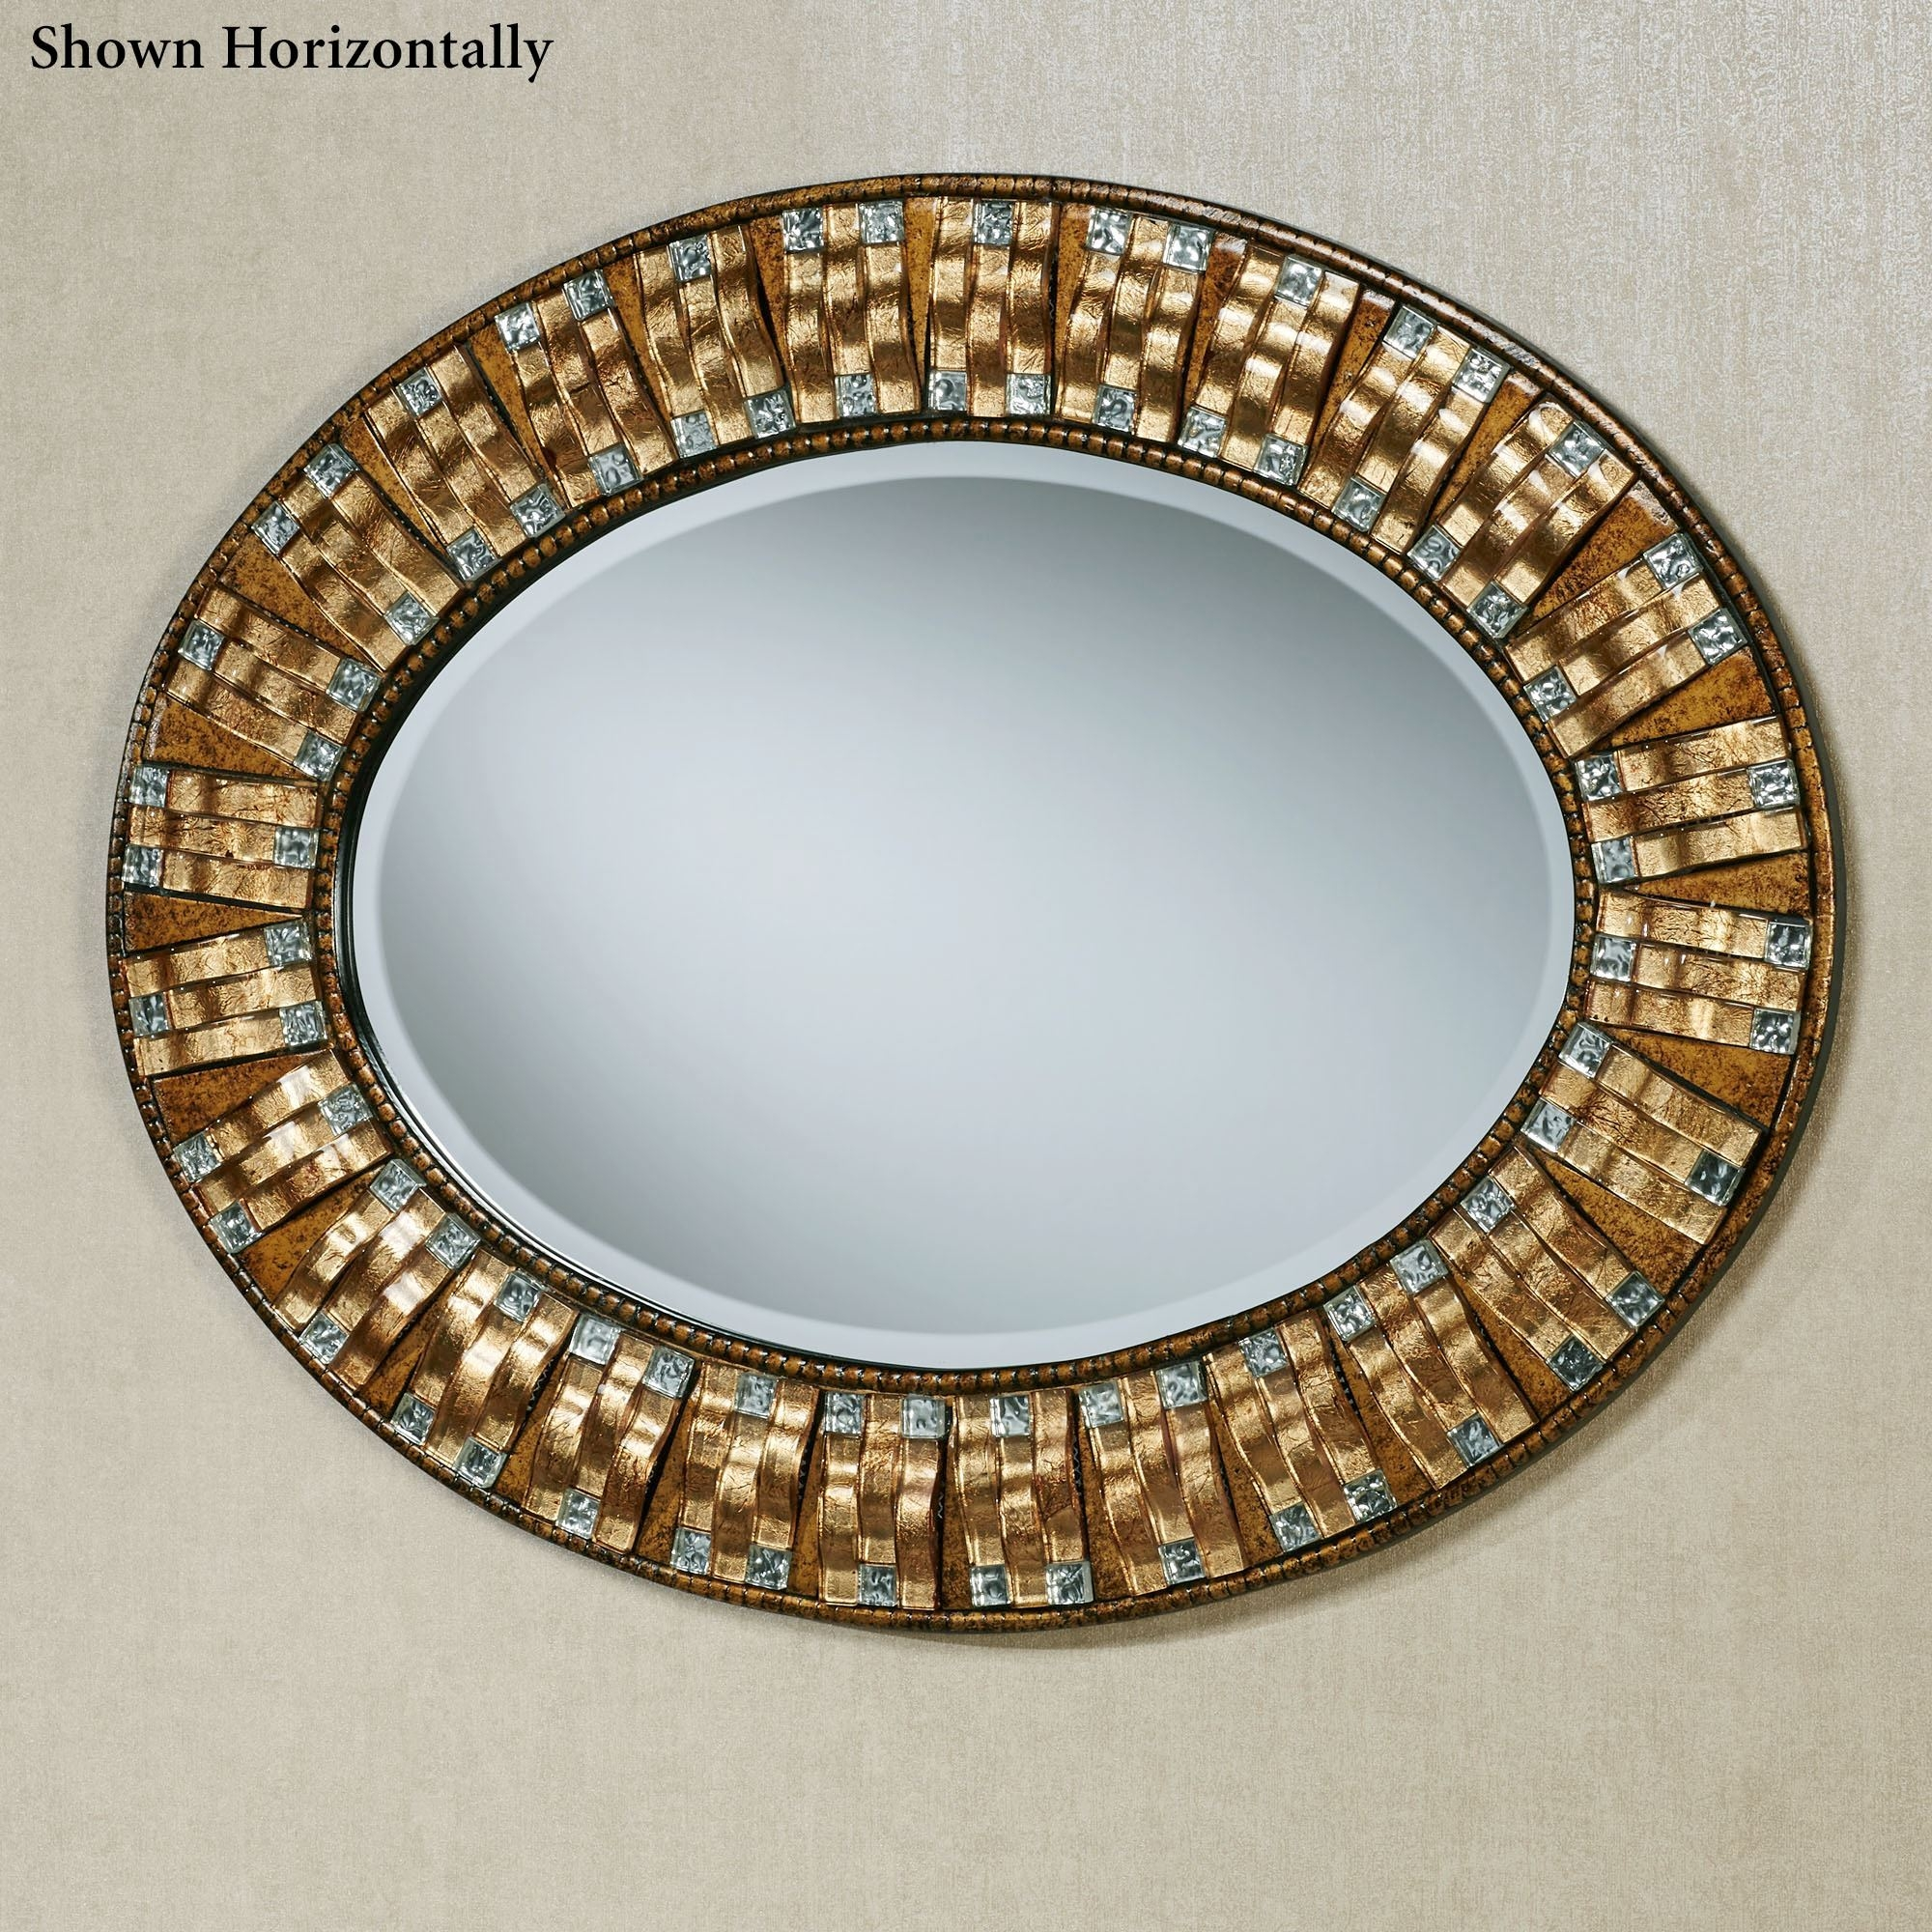 Maybelle Mosaic Oval Wall Mirror With Regard To Oval Wall Mirrors (Image 8 of 15)